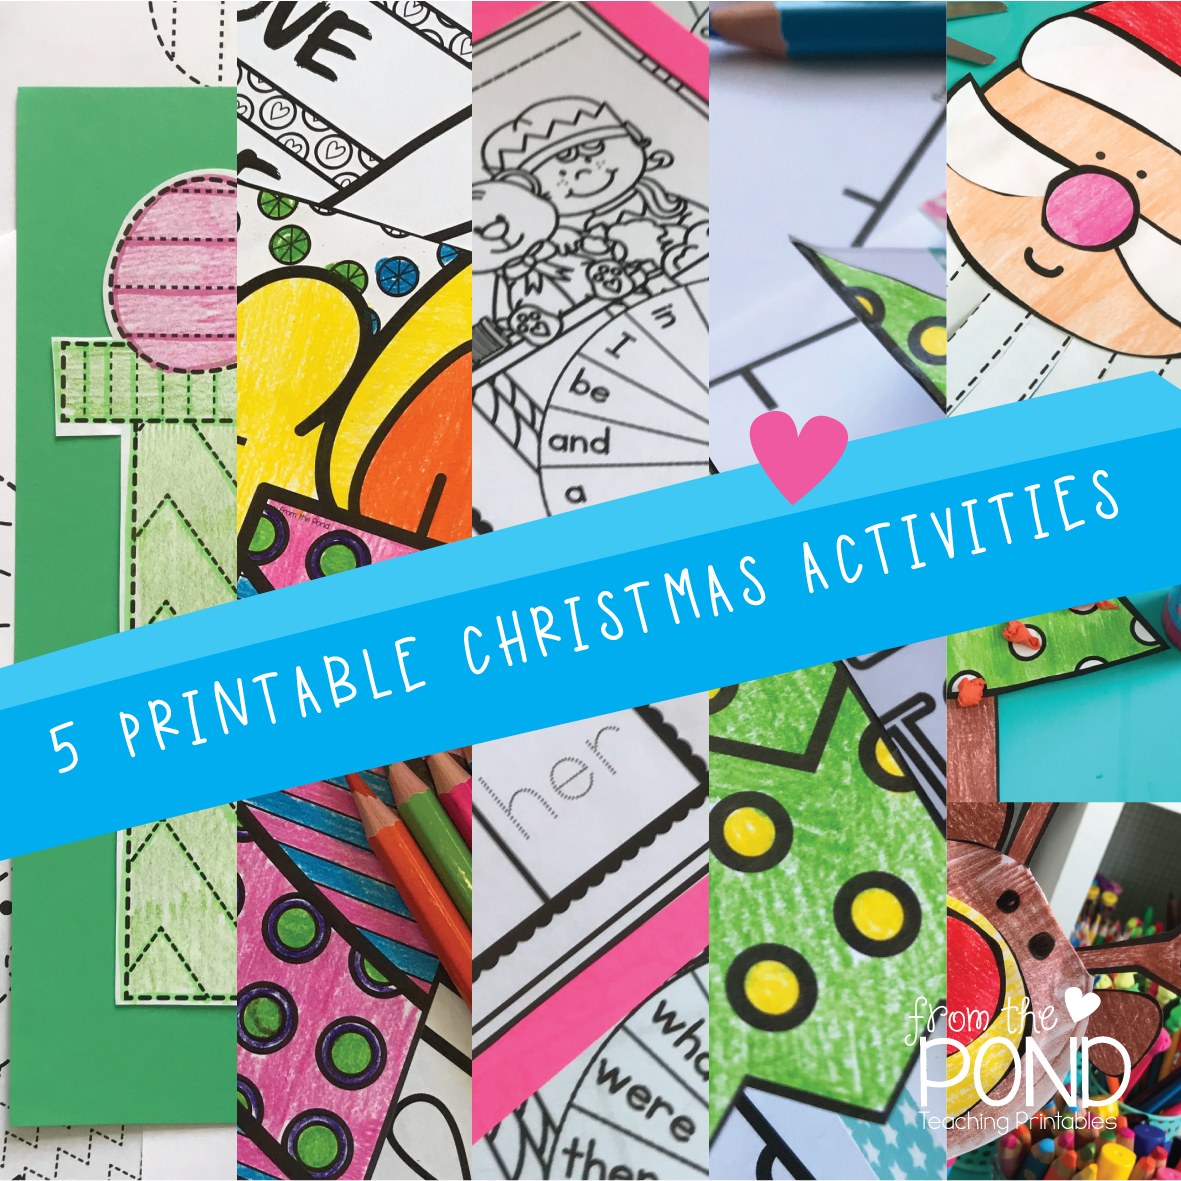 5 Fun and Easy Prep Printable Activities for Christmas | From the Pond